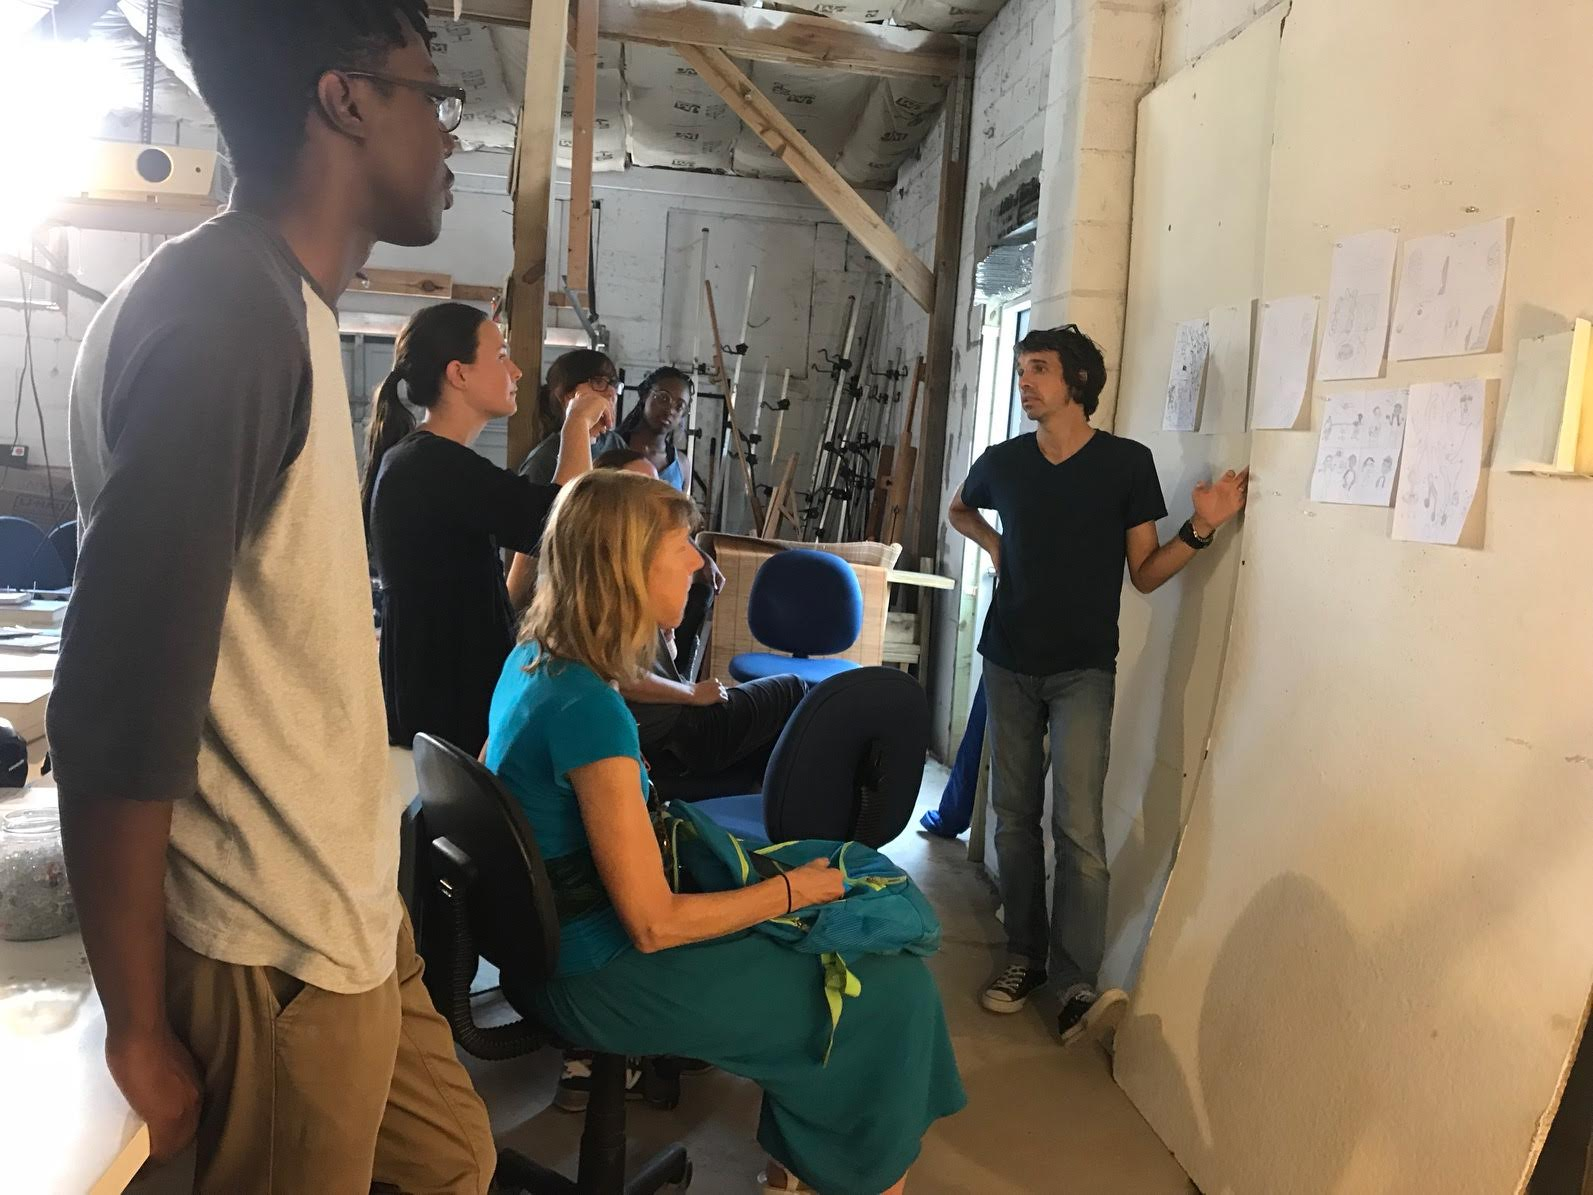 Scene from our first day in our new space!